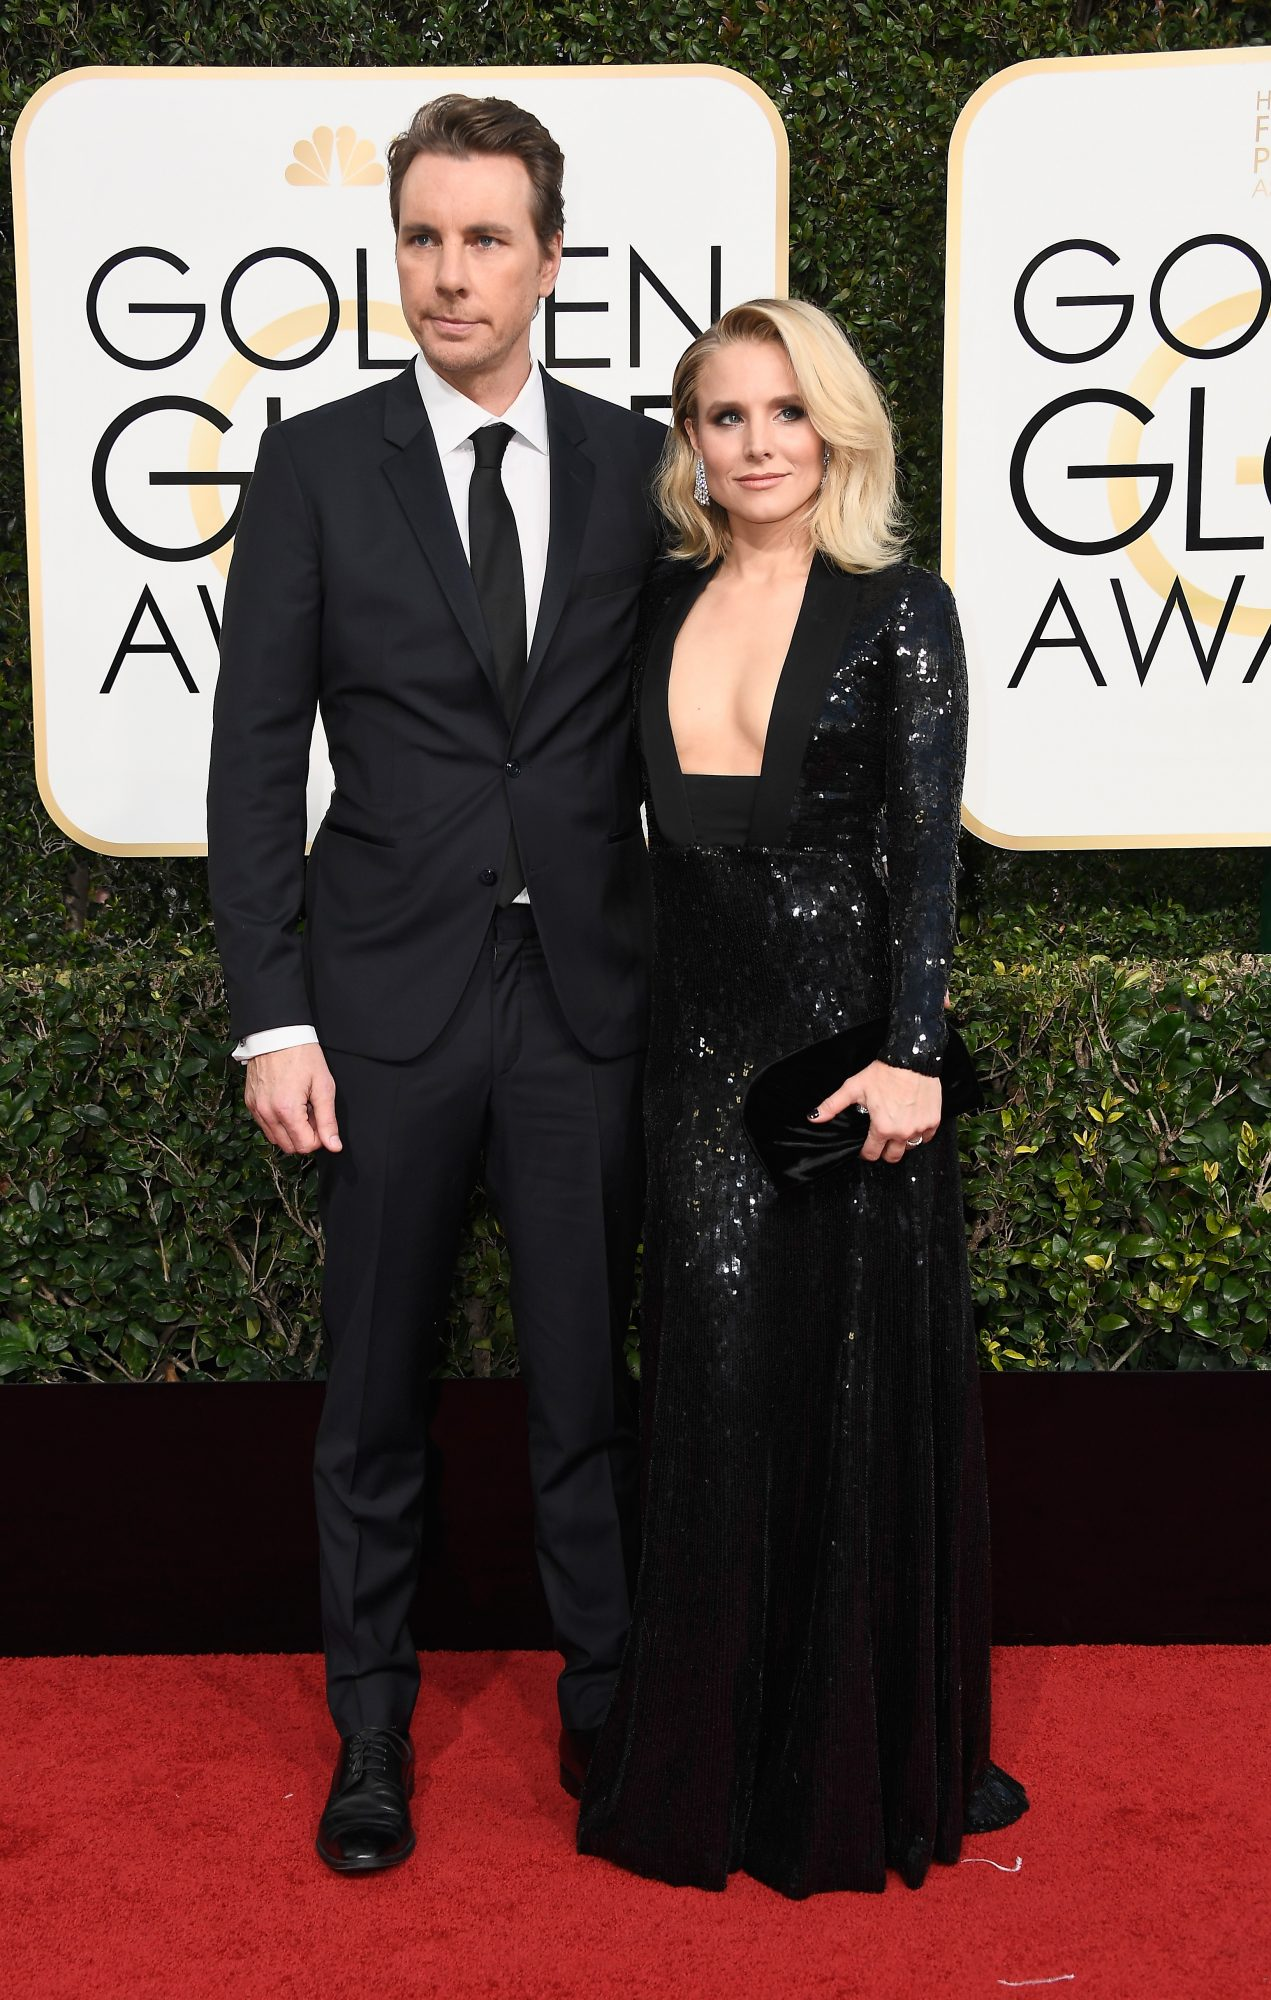 Kristen Bell and Dax Shepard Golden Globes 2017